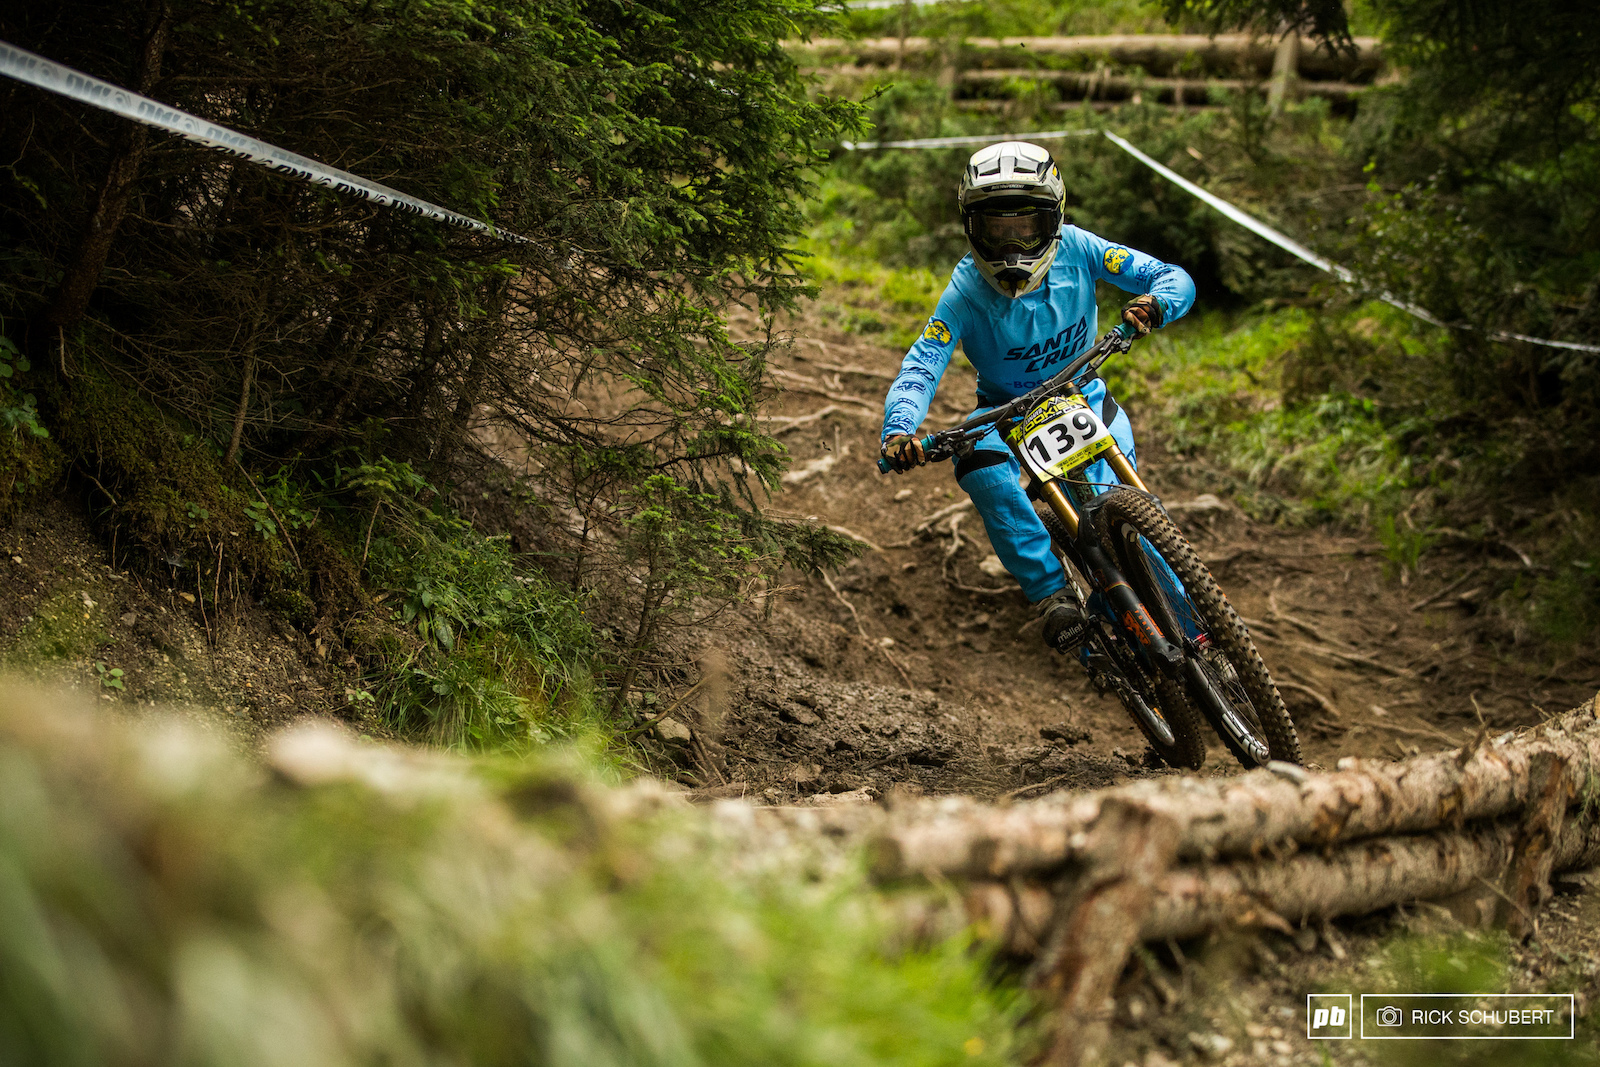 The Flying Dutch man Ike Klaassen missed the podium by one spot